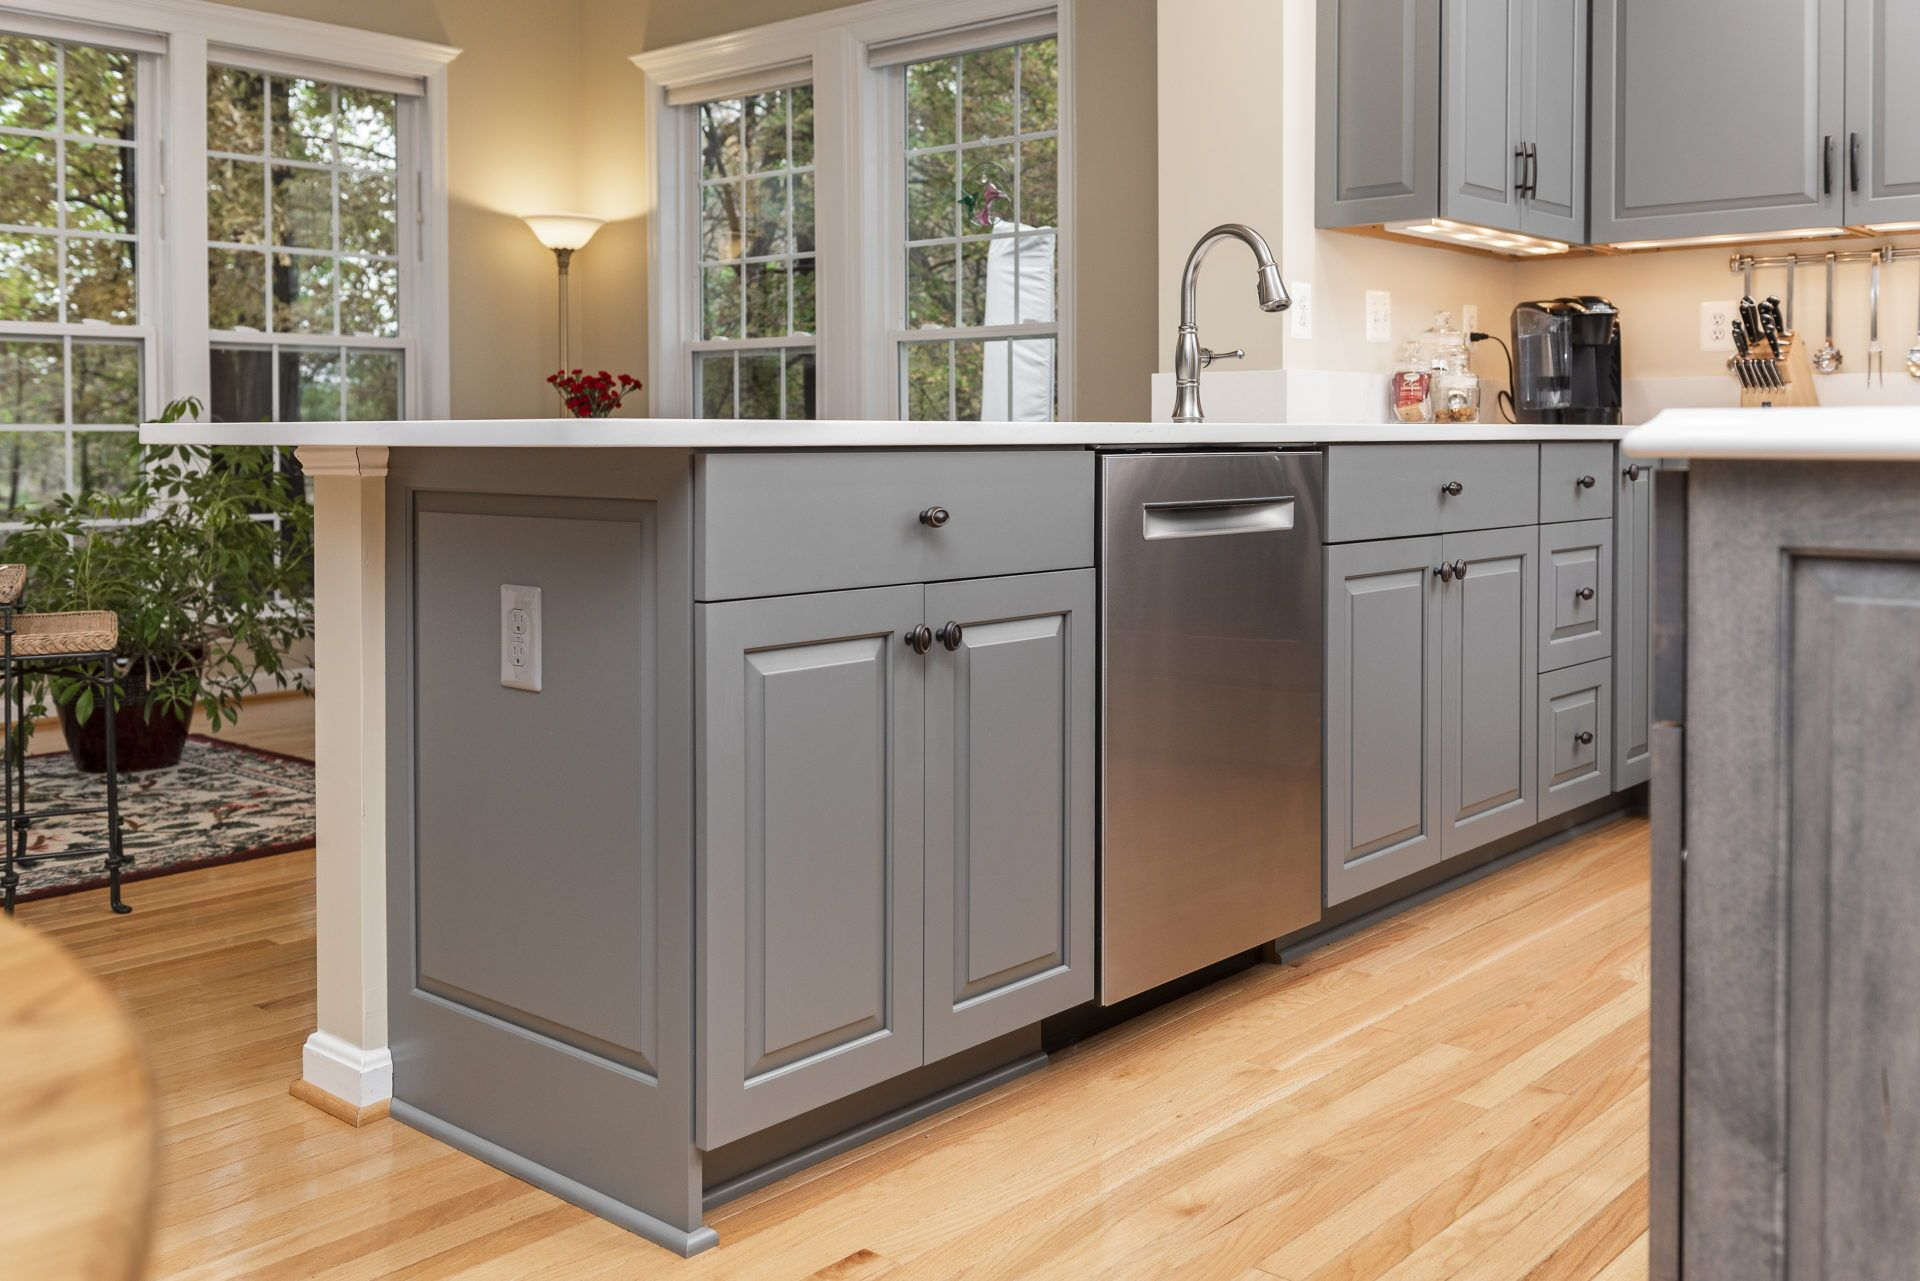 Gaithersburg Md K S Renewal Systems Llc Cabinet Styles Grey Kitchen Cabinets White Quartz Countertop